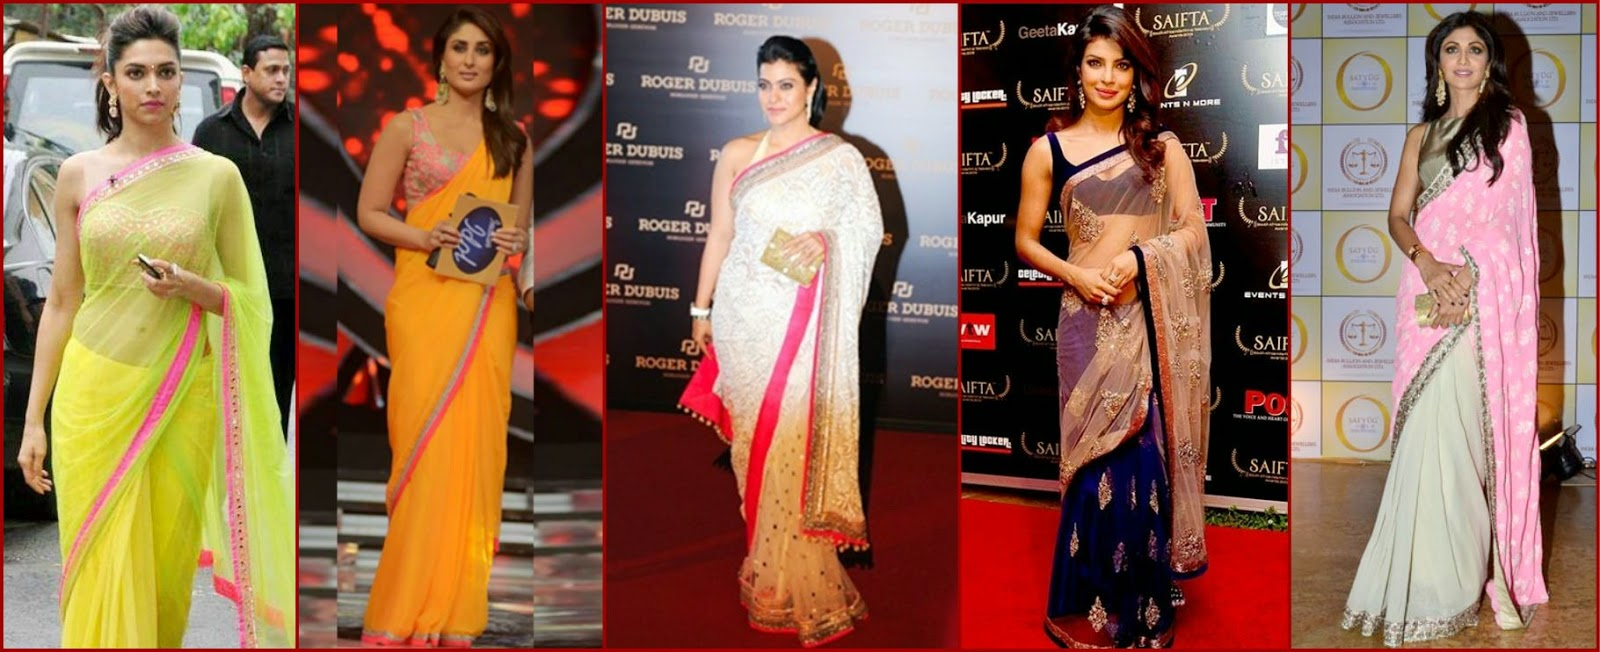 Bollywood actresses in manish malhotra sarees, deepika in manish malhotra saree, Kareena in manish malhotra saree, Kajol in manish saree, priyanka in manisha saree, shilpa shetty in manish malhotra